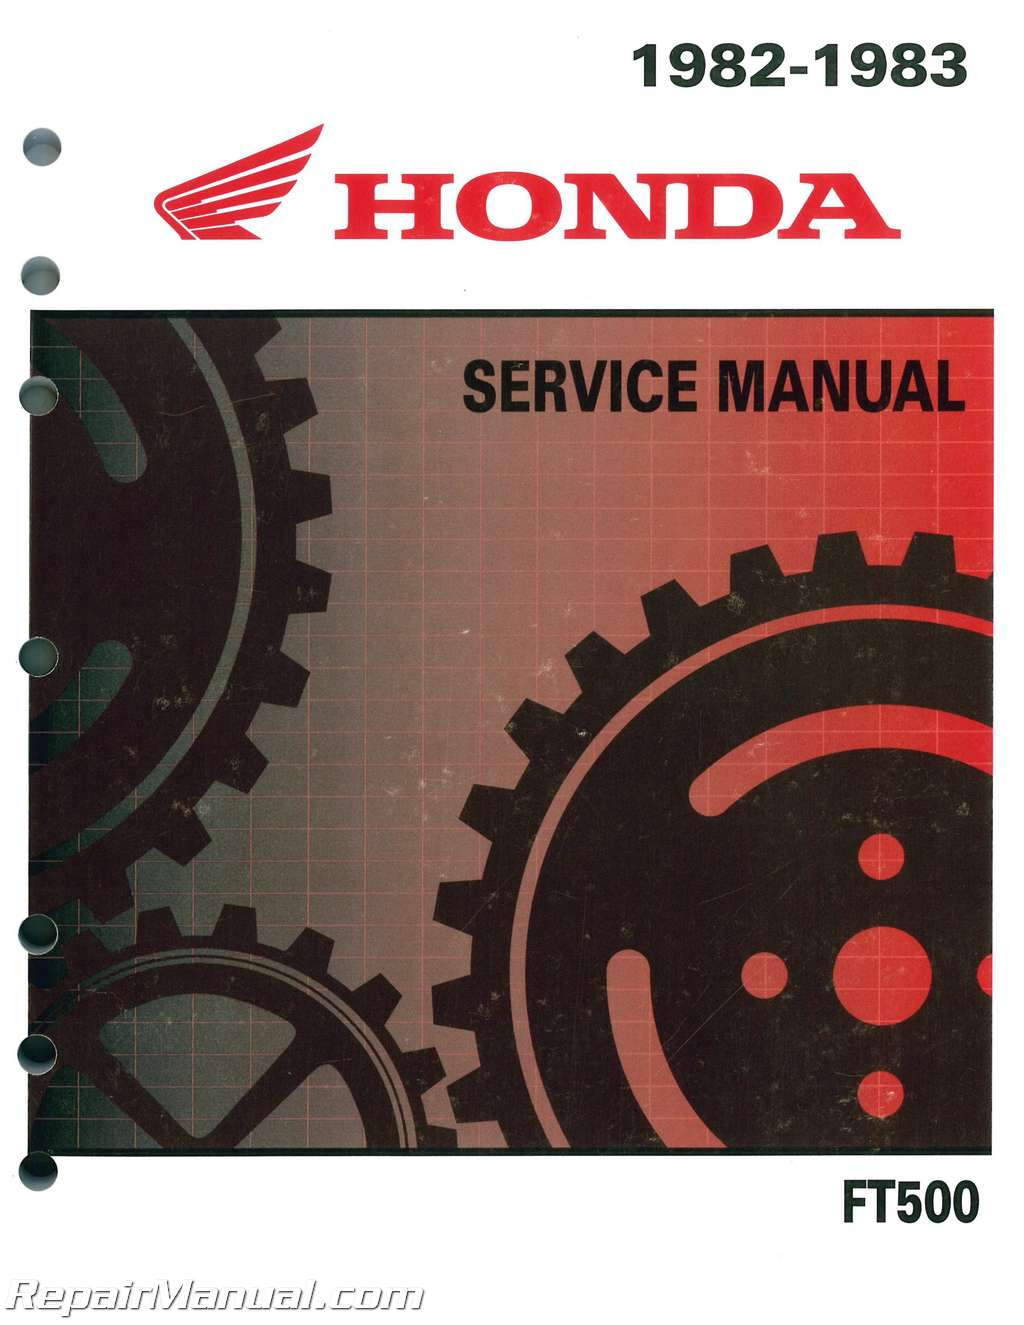 Ft 500 Wiring Diagram Schemes 1982 Honda Accord 1983 Ft500 Ascot Motorcycle Service Manual Rh Repairmanual Com Simple Diagrams 3